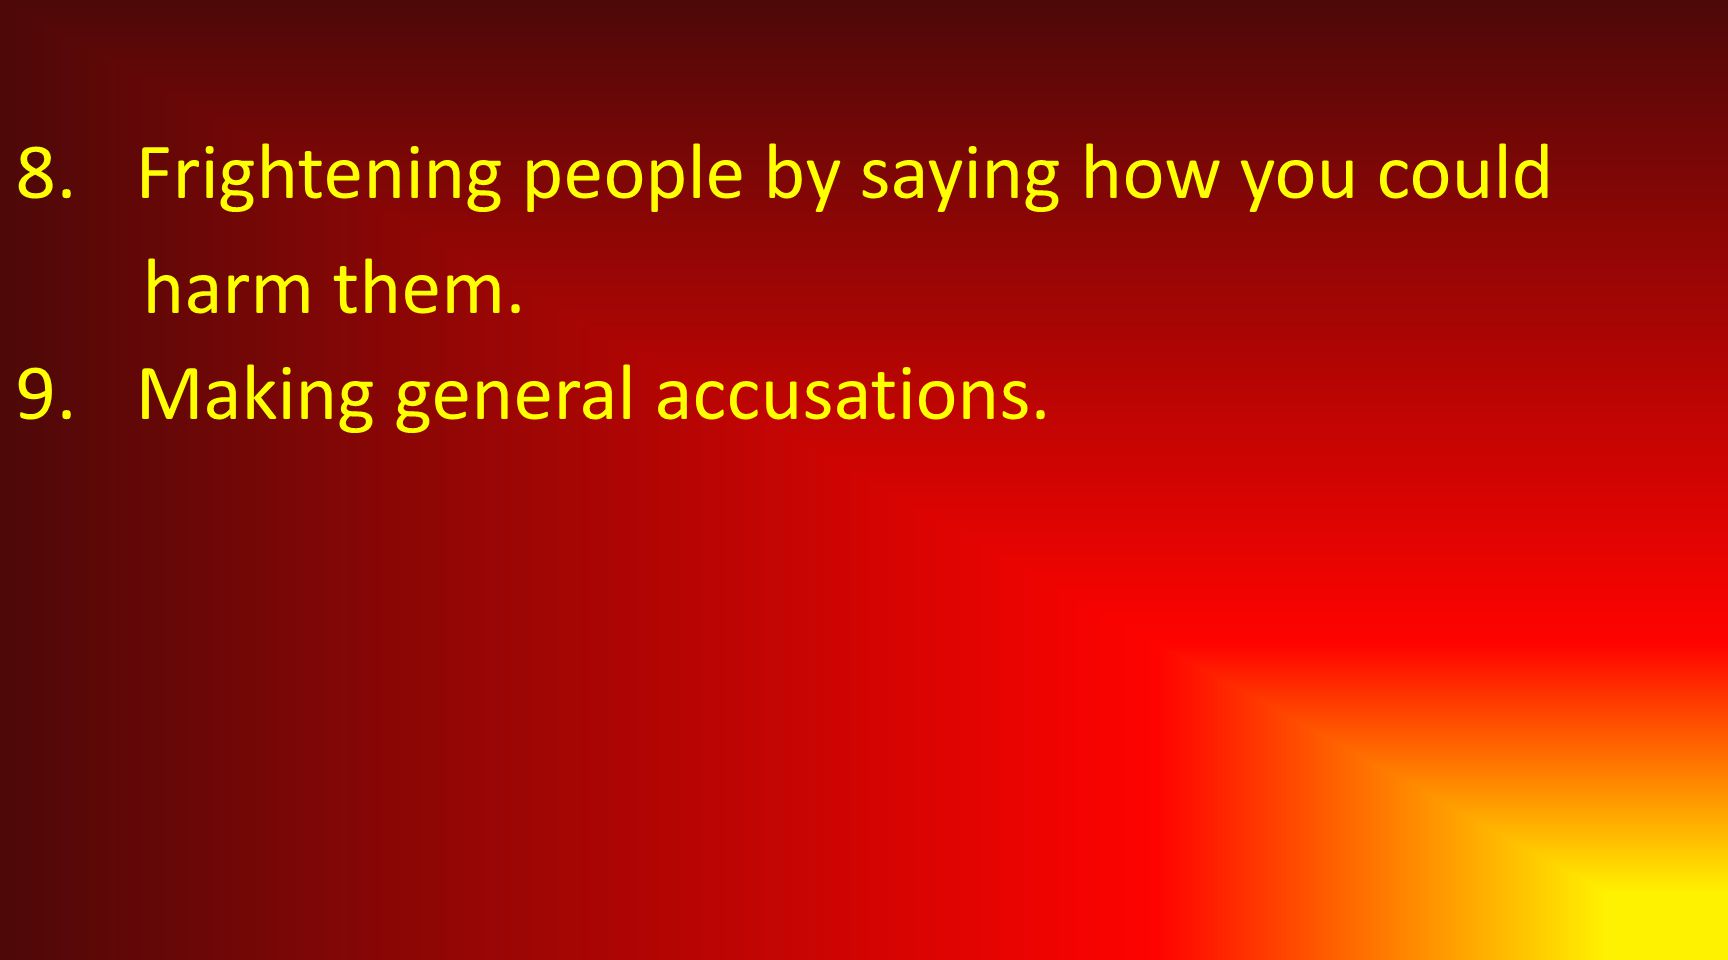 8.Frightening people by saying how you could harm them. 9.Making general accusations.